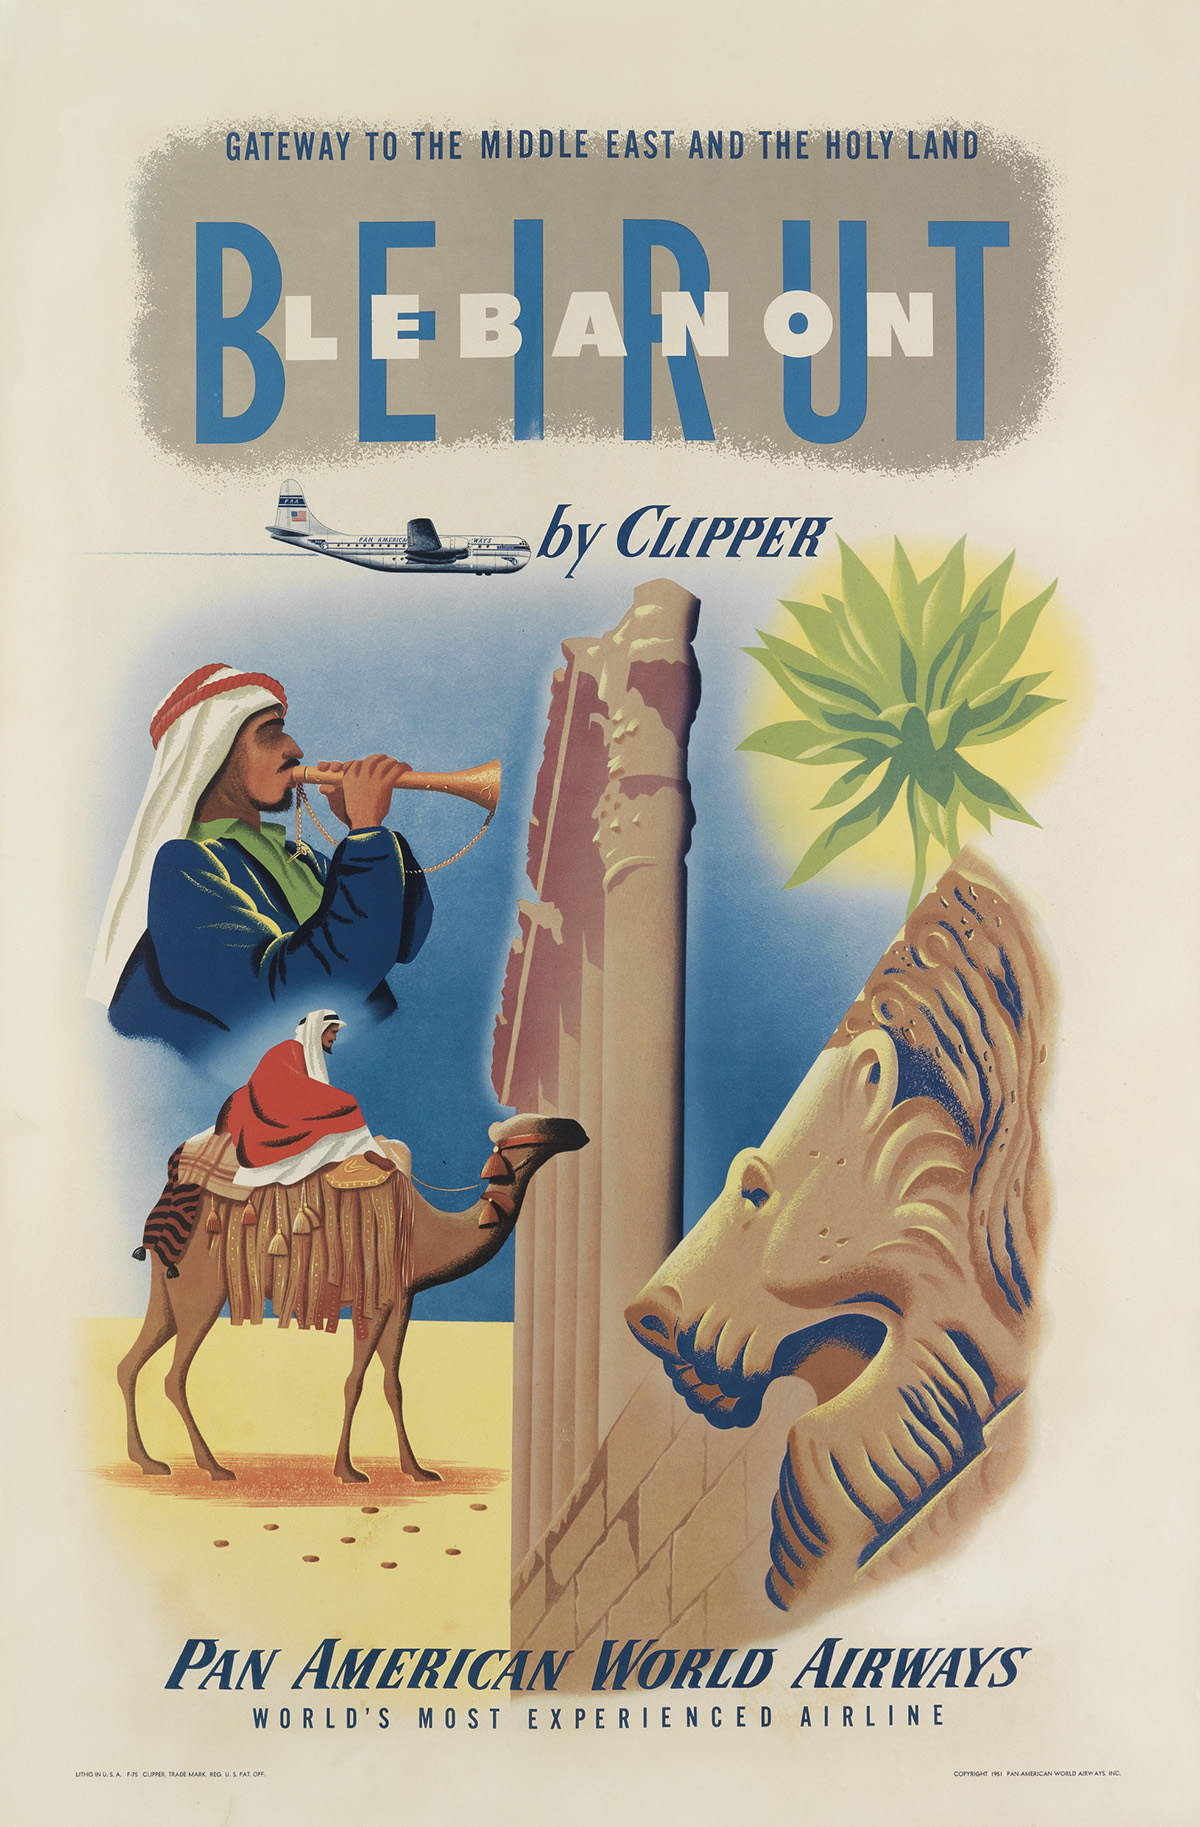 DESIGNER-UNKNOWN-BEIRUT-LEBANON-BY-CLIPPER--PAN-AMERICAN-WOR